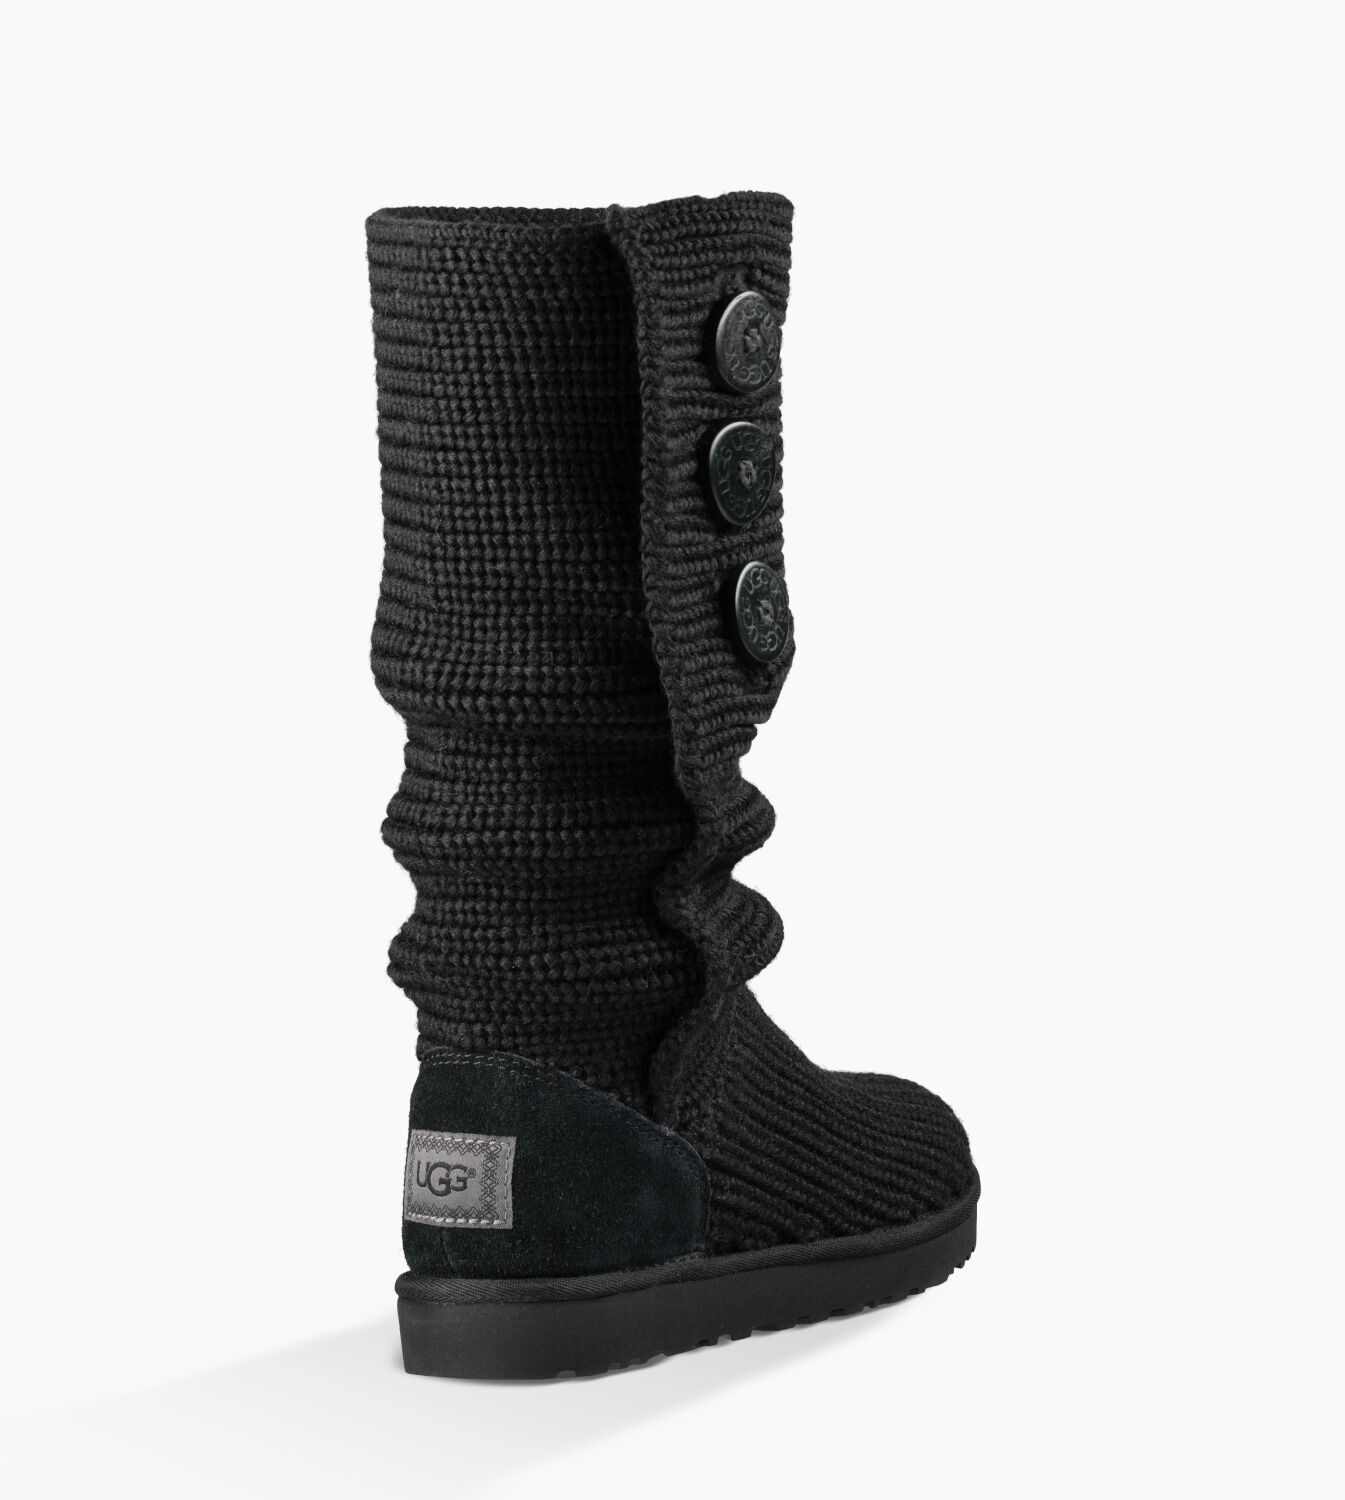 Classic UGG Cardy Boots   UGG® Official